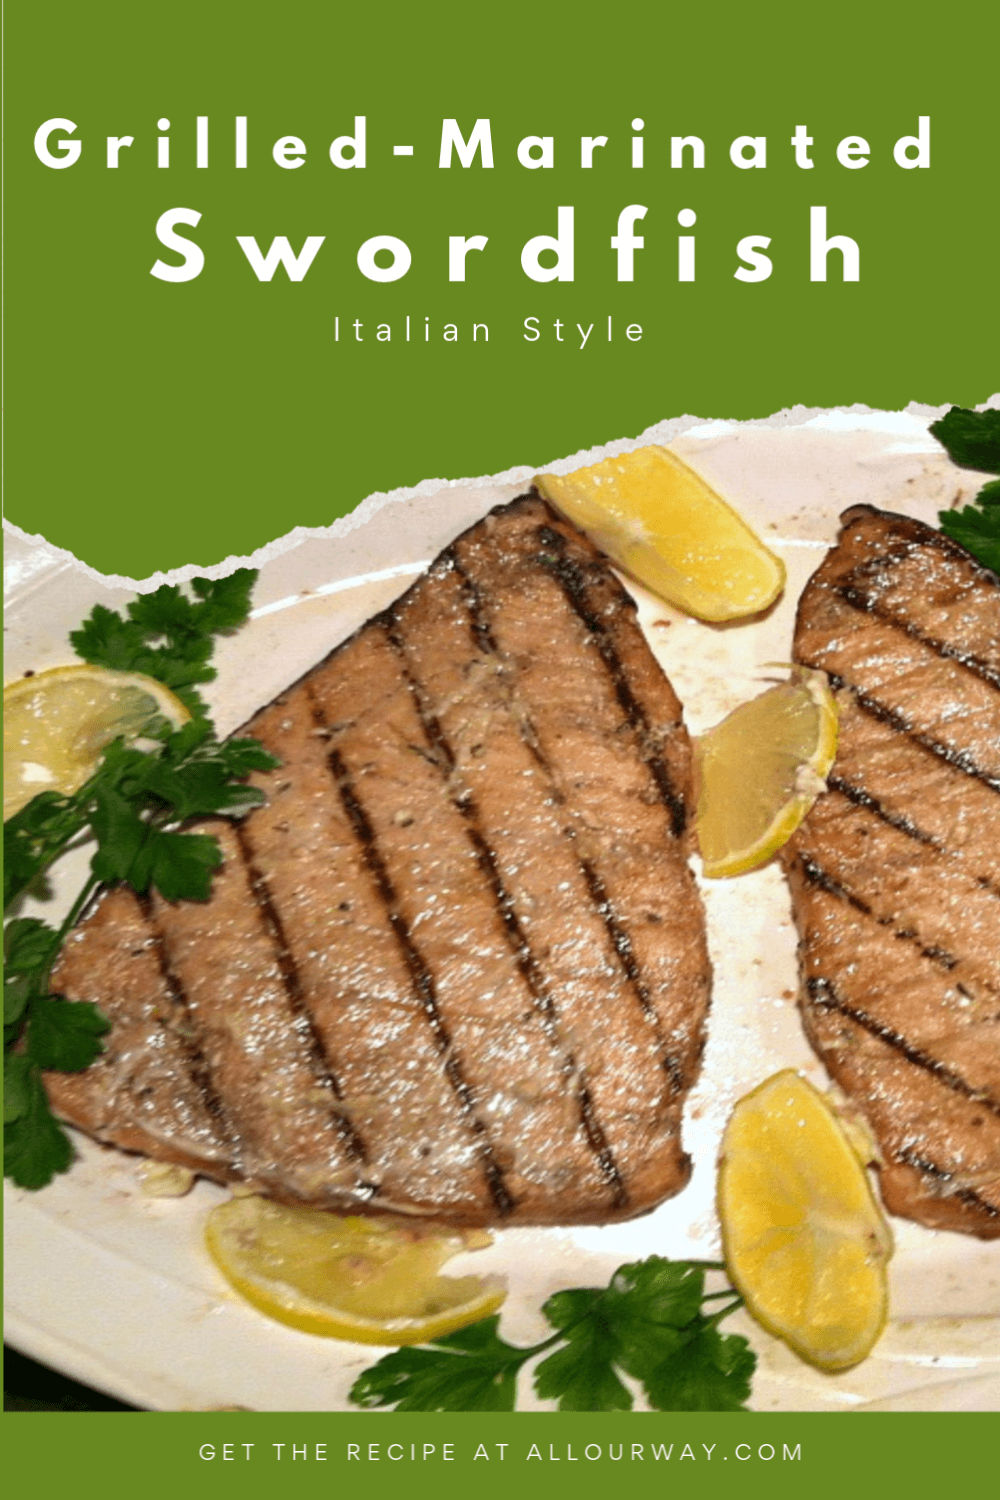 A very good way to prepare swordfish. The fish turns out full of flavor and it is very moist. The marinade is a combination of fresh herbs, balsamic vinegar, fresh lemon juice, garlic and olive oil. A quick meal to prepare and excellent for weeknight, company, and the Lenten season.